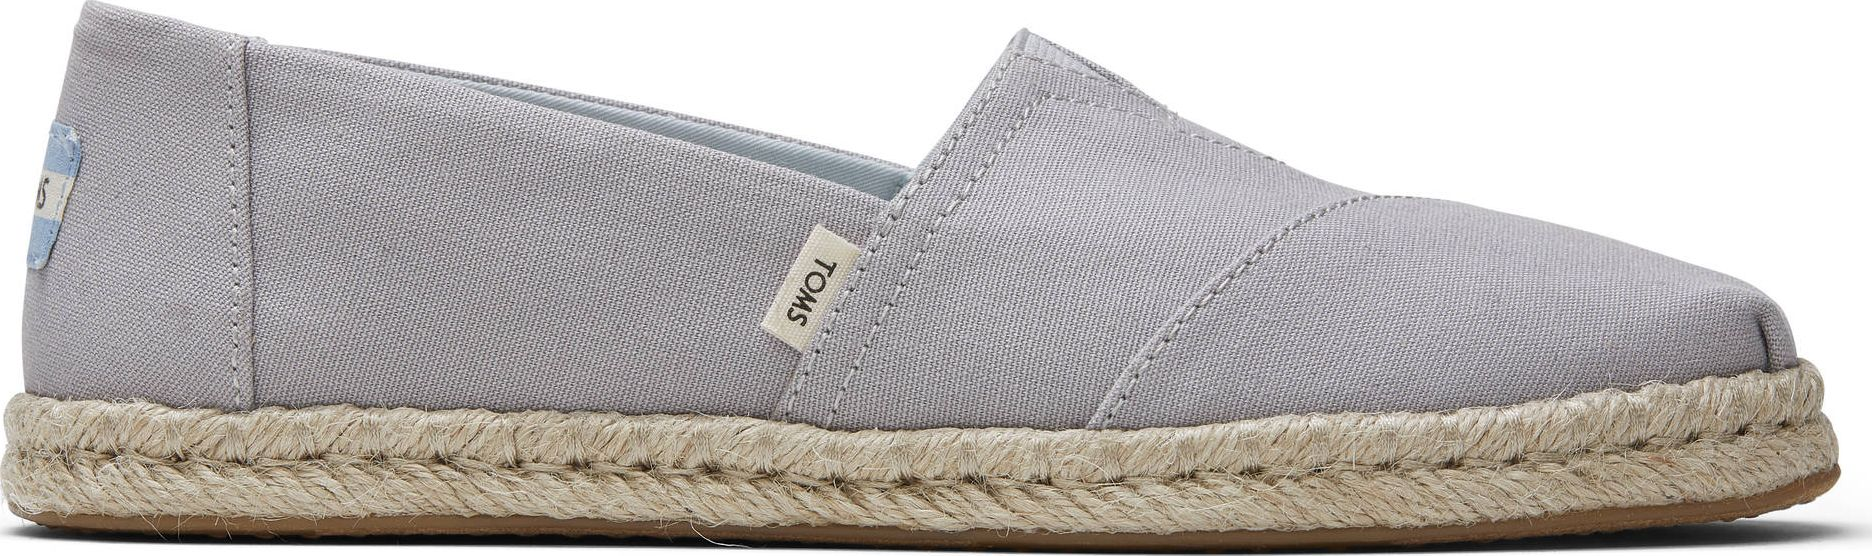 TOMS Plant Dyed Canvas Rope Women's Alpargata Grey 40